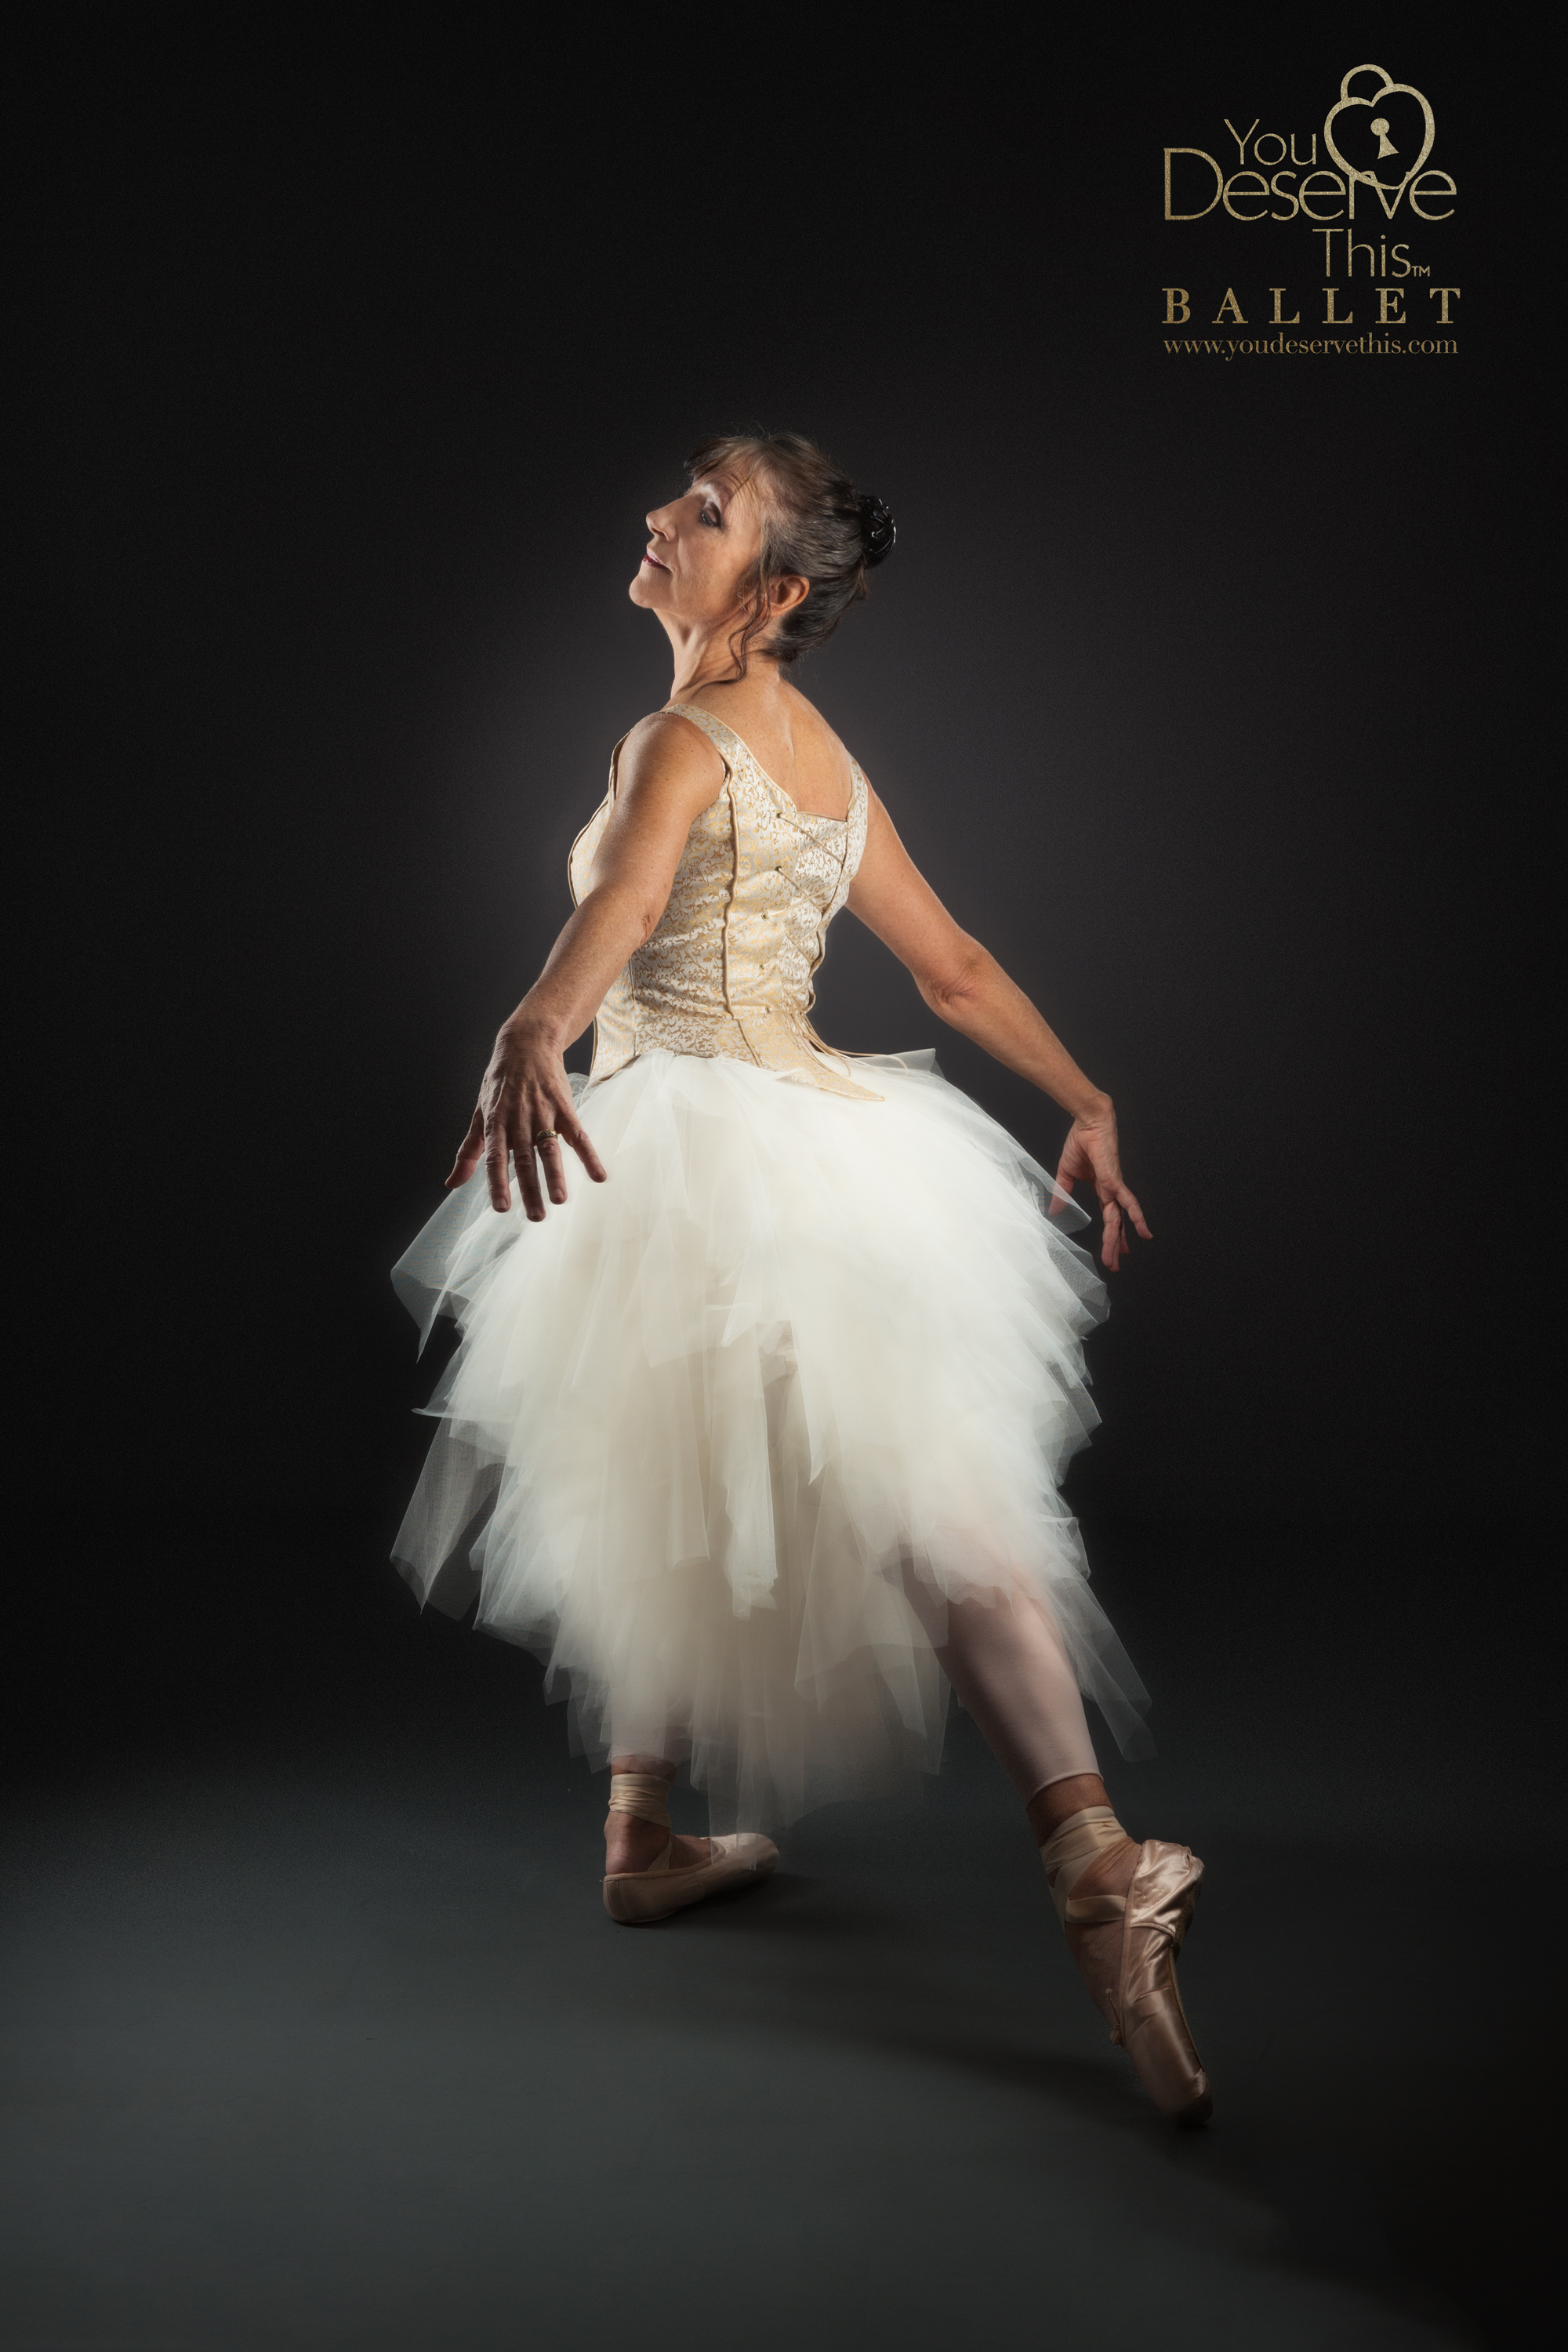 Love this beautiful ballet pose. Gorgeous Ballet Photographs from You Deserve This Portrait Studio uk. www.youdeservethis.com